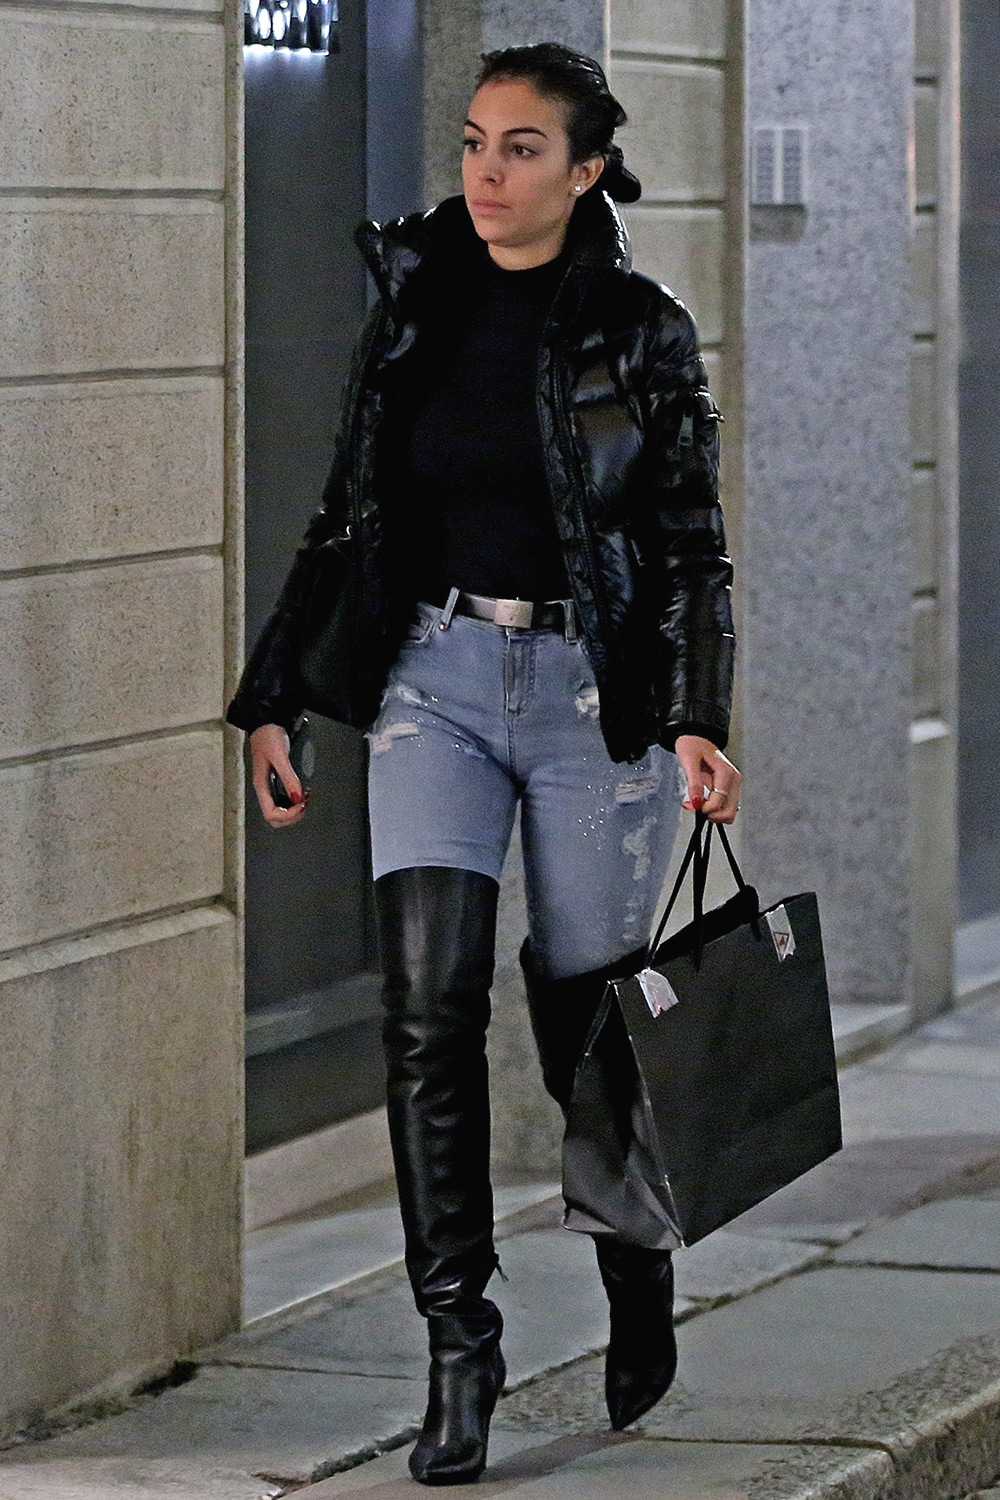 Georgina Rodriguez goes shopping at luxury retailers